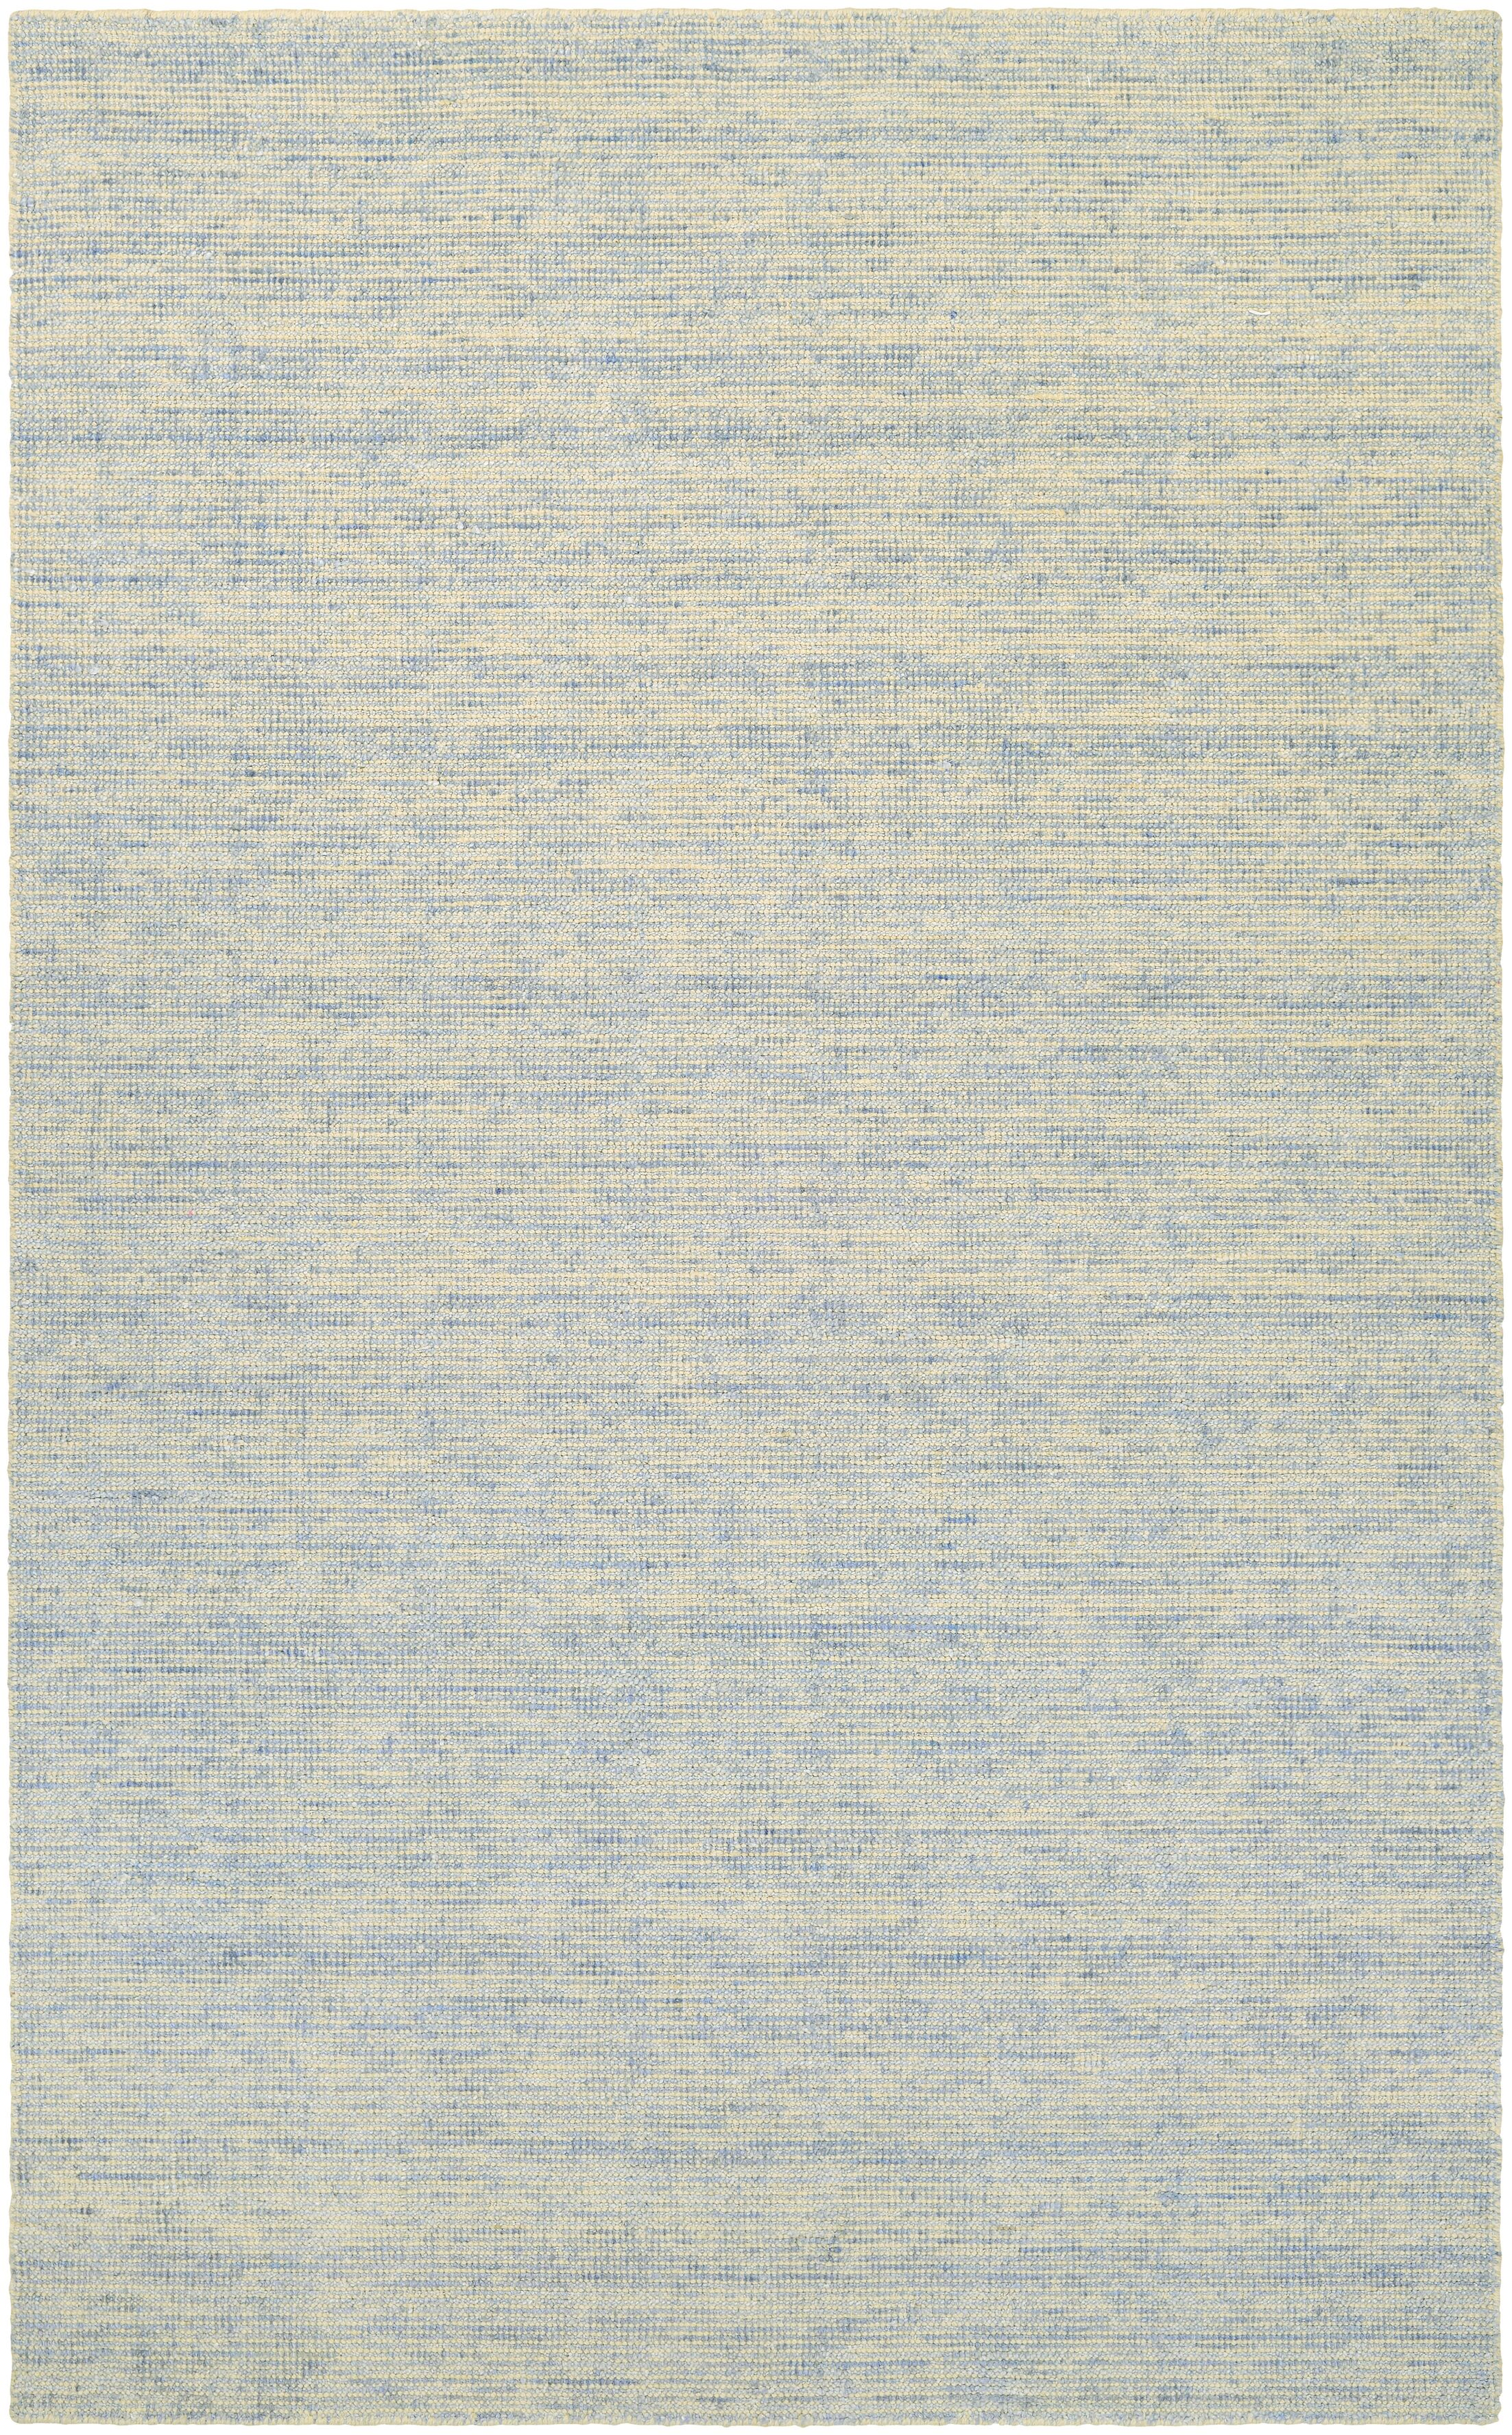 Afton Hand-Loomed Light Blue/Beige Area Rug Rug Size: Rectangle 9'6